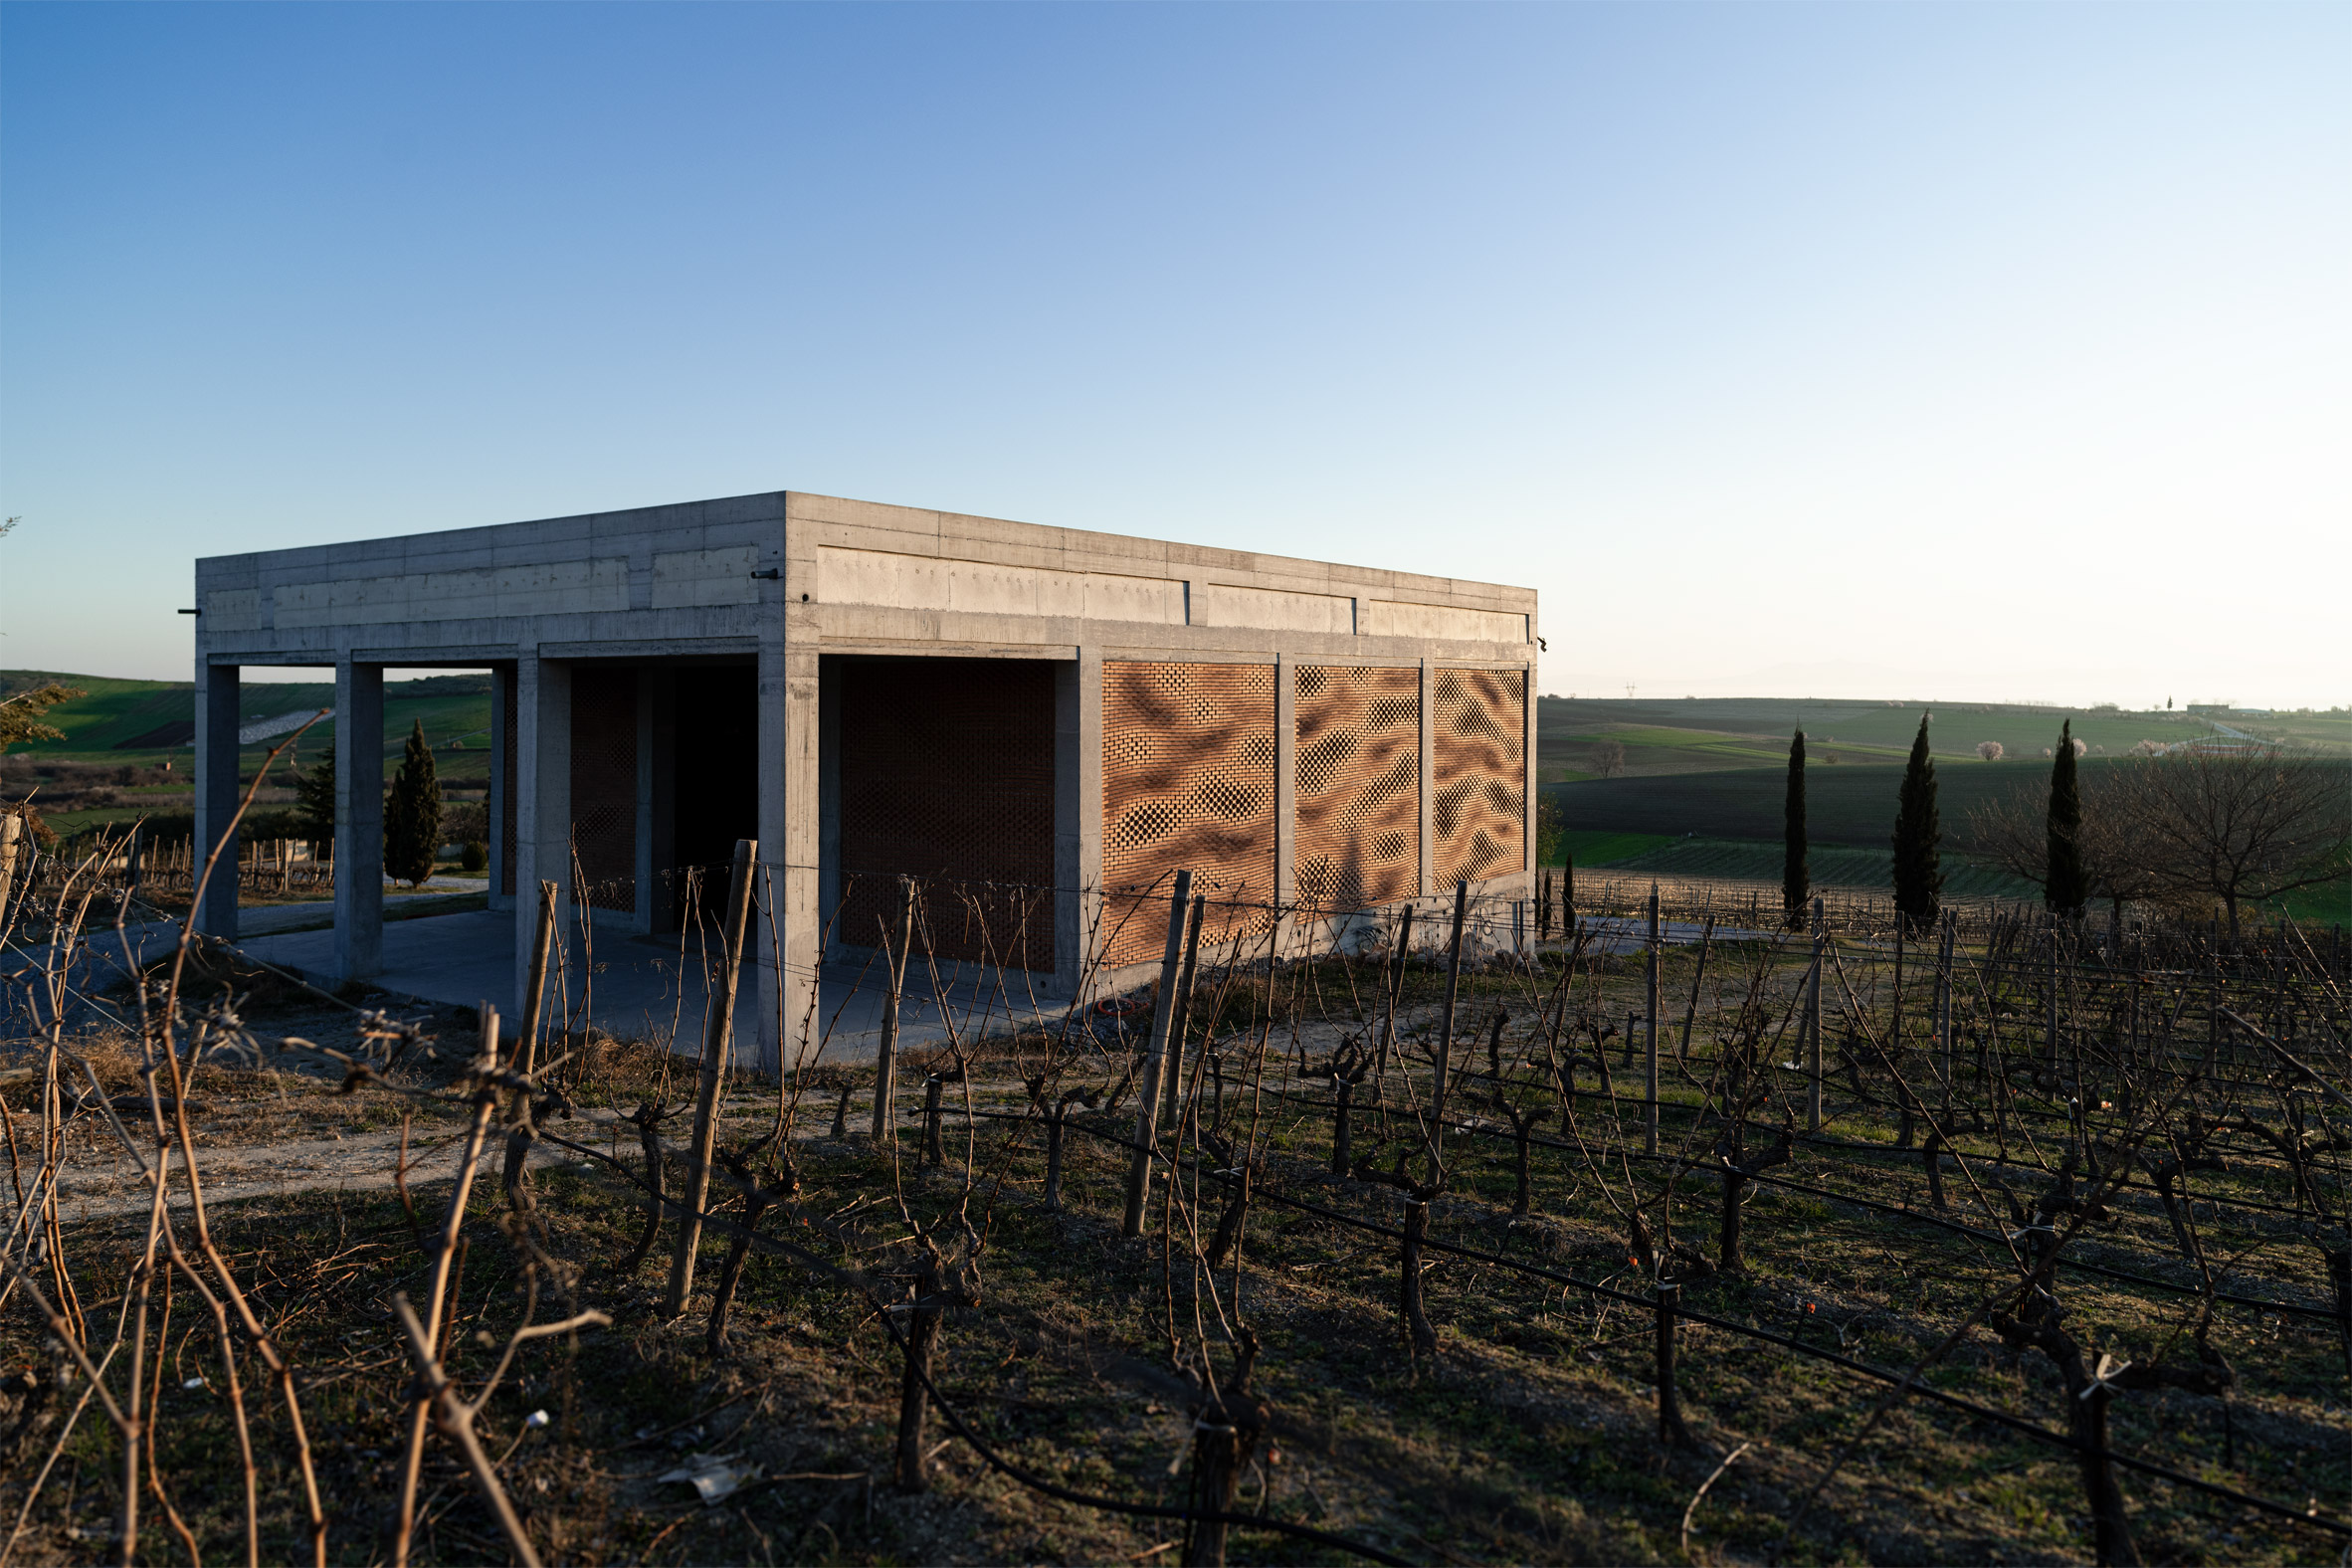 Kitrvs winery's parametric facades built using augmented bricklaying by Gramazio Kohler Research at ETH Zürich